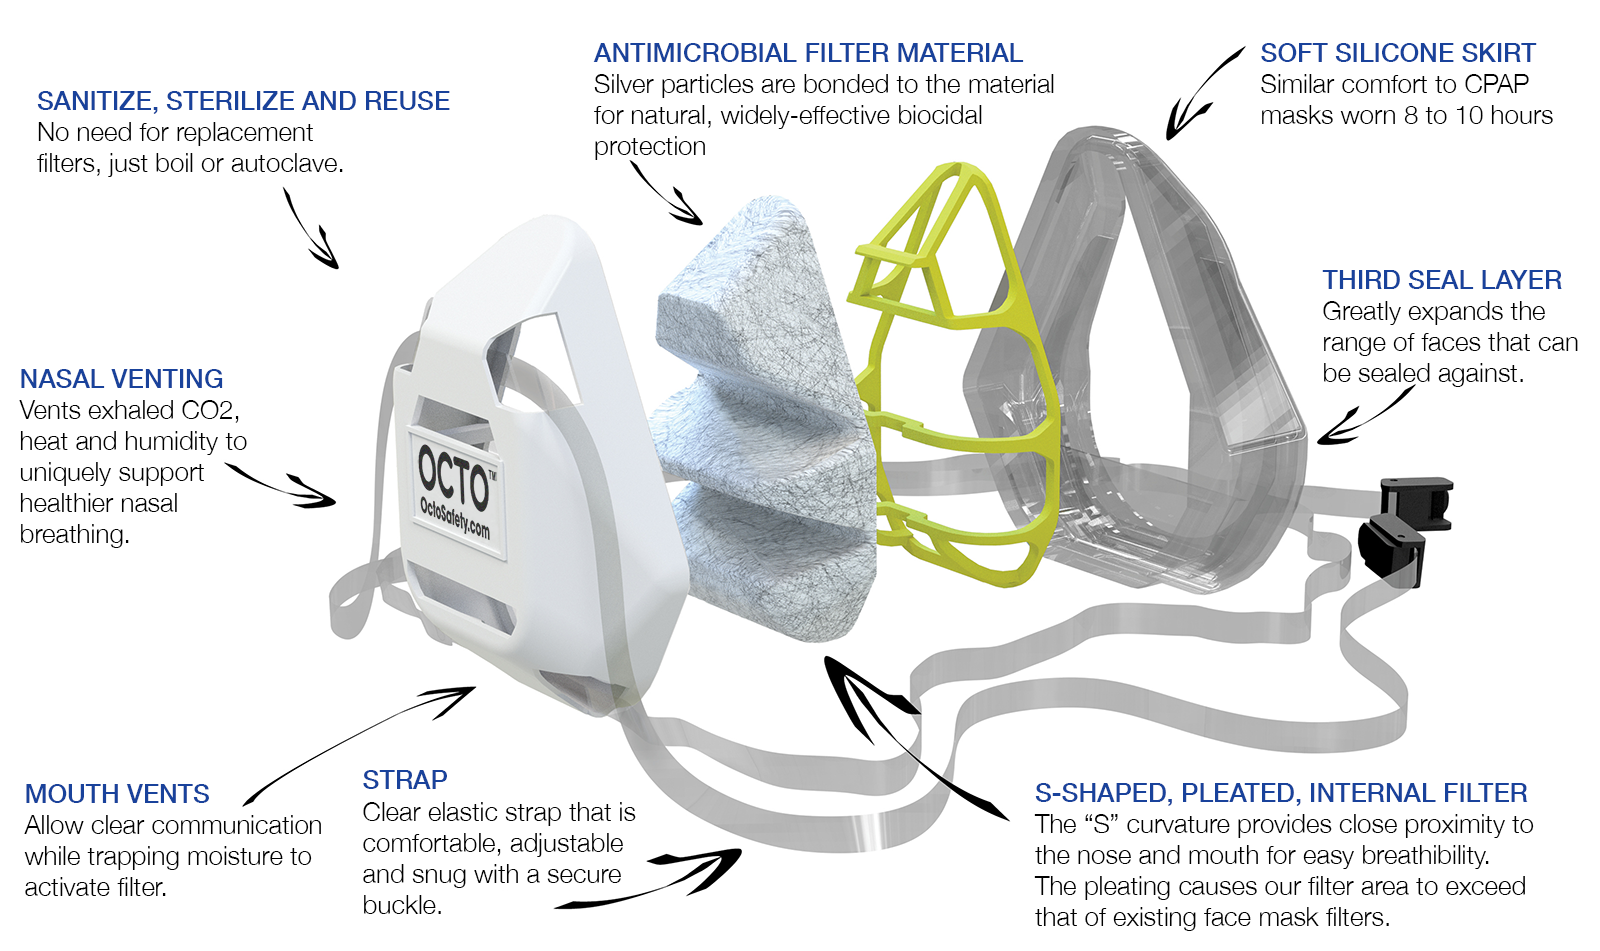 Respirator exploded view